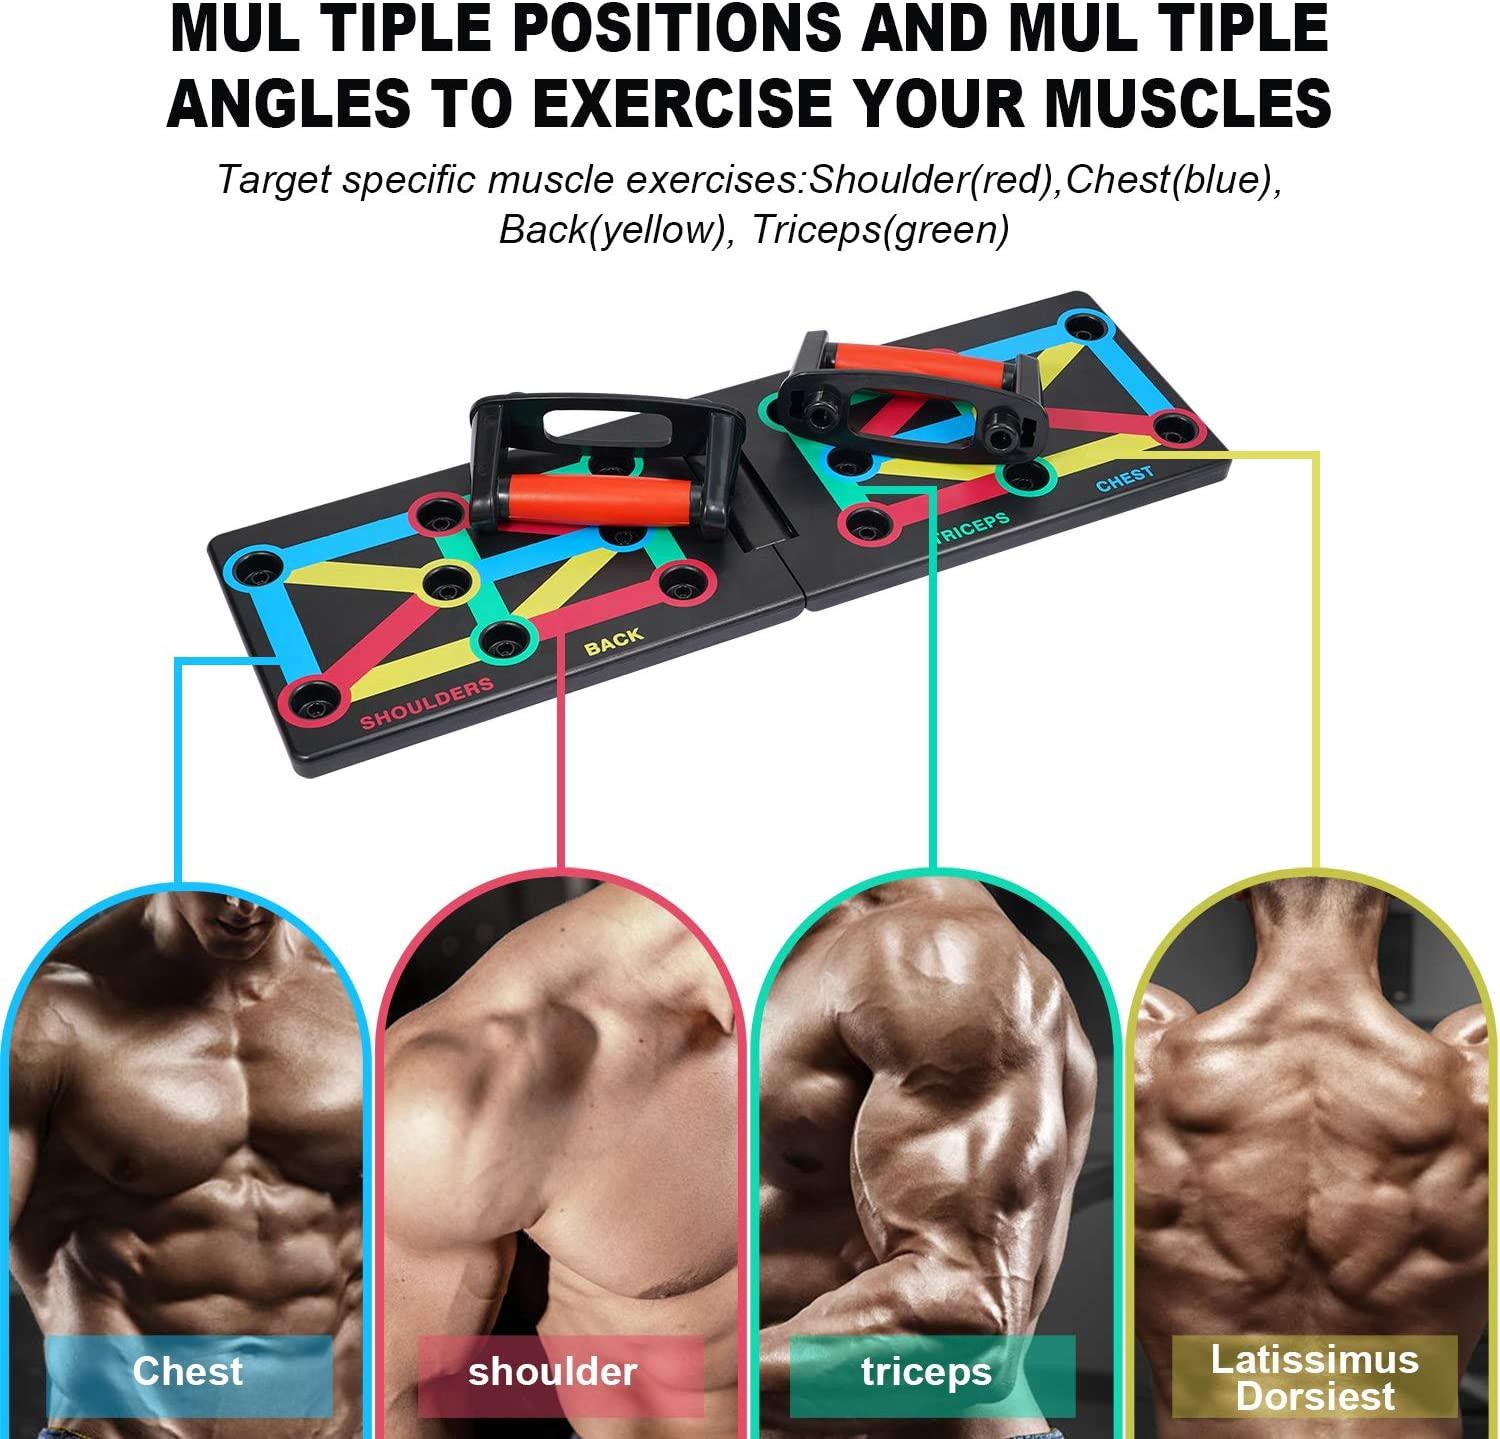 Widousy Multi-function Push Up Board Foldable 9 In 1 Body Building Push Up Rack Board for Body Muscle Training Sport Gym Home or Outdoor Exercise Foldable Body Building Stands Board